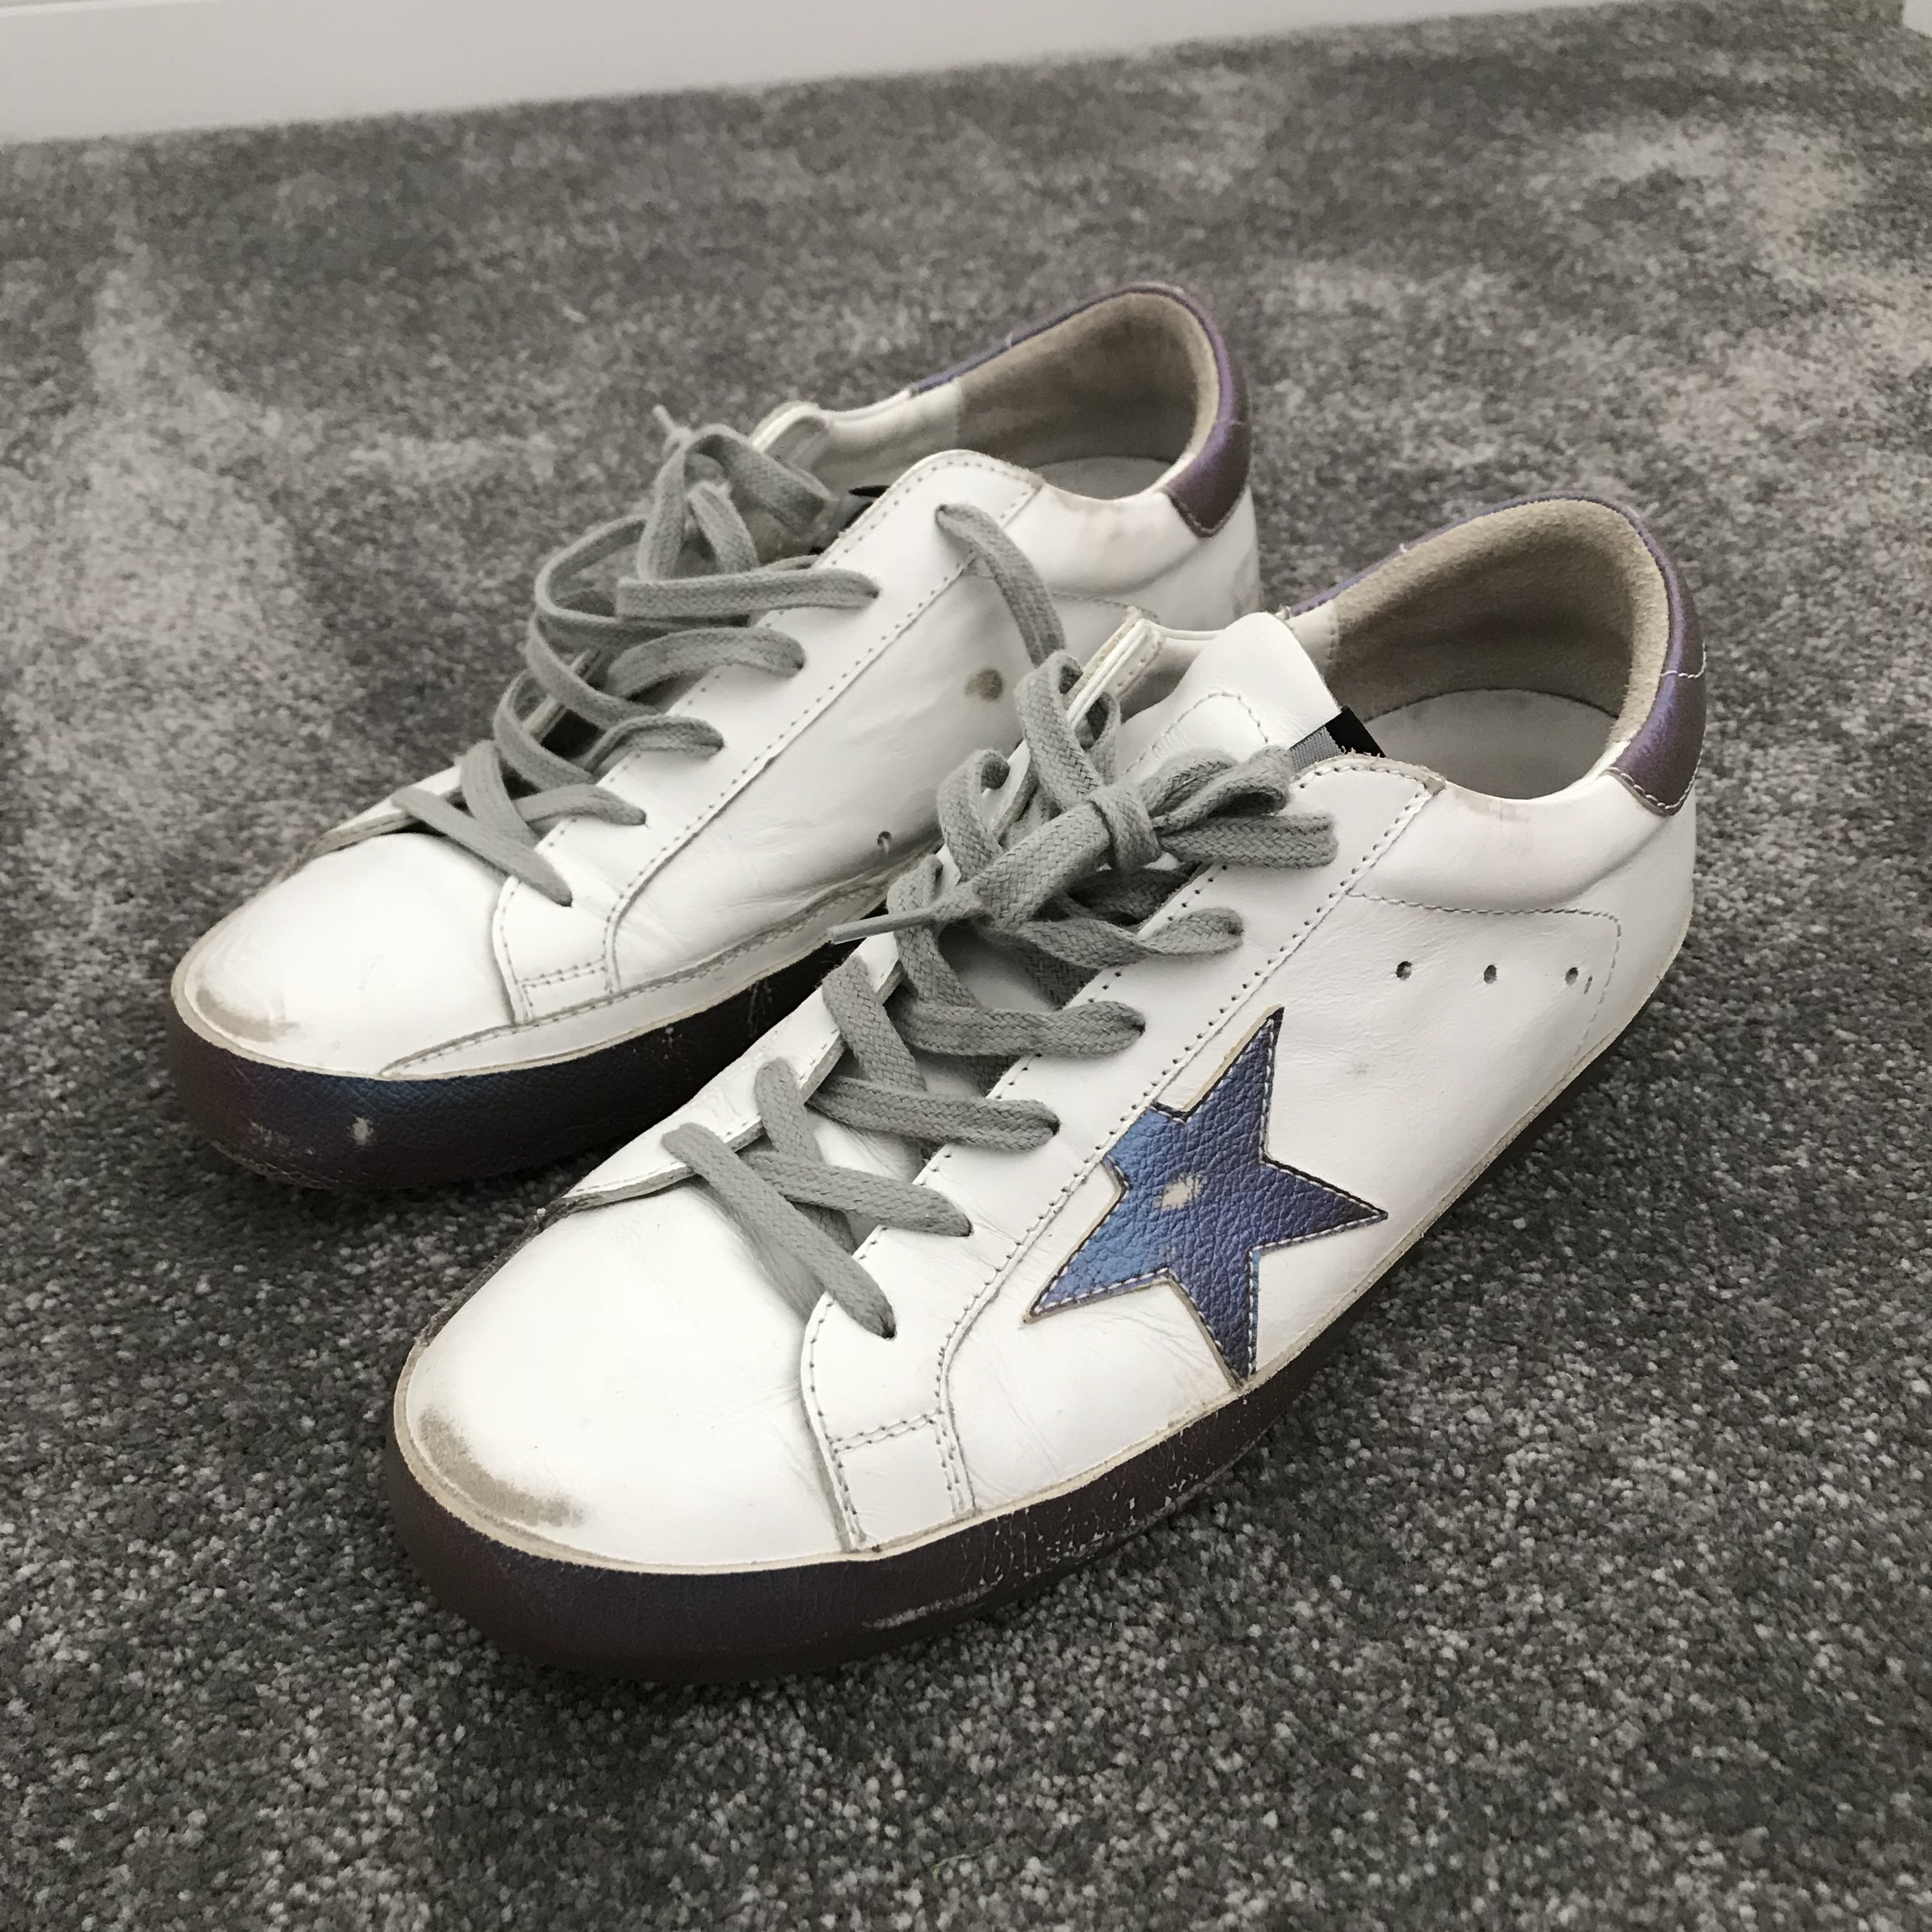 Golden goose trainers size 40 Fit uk6